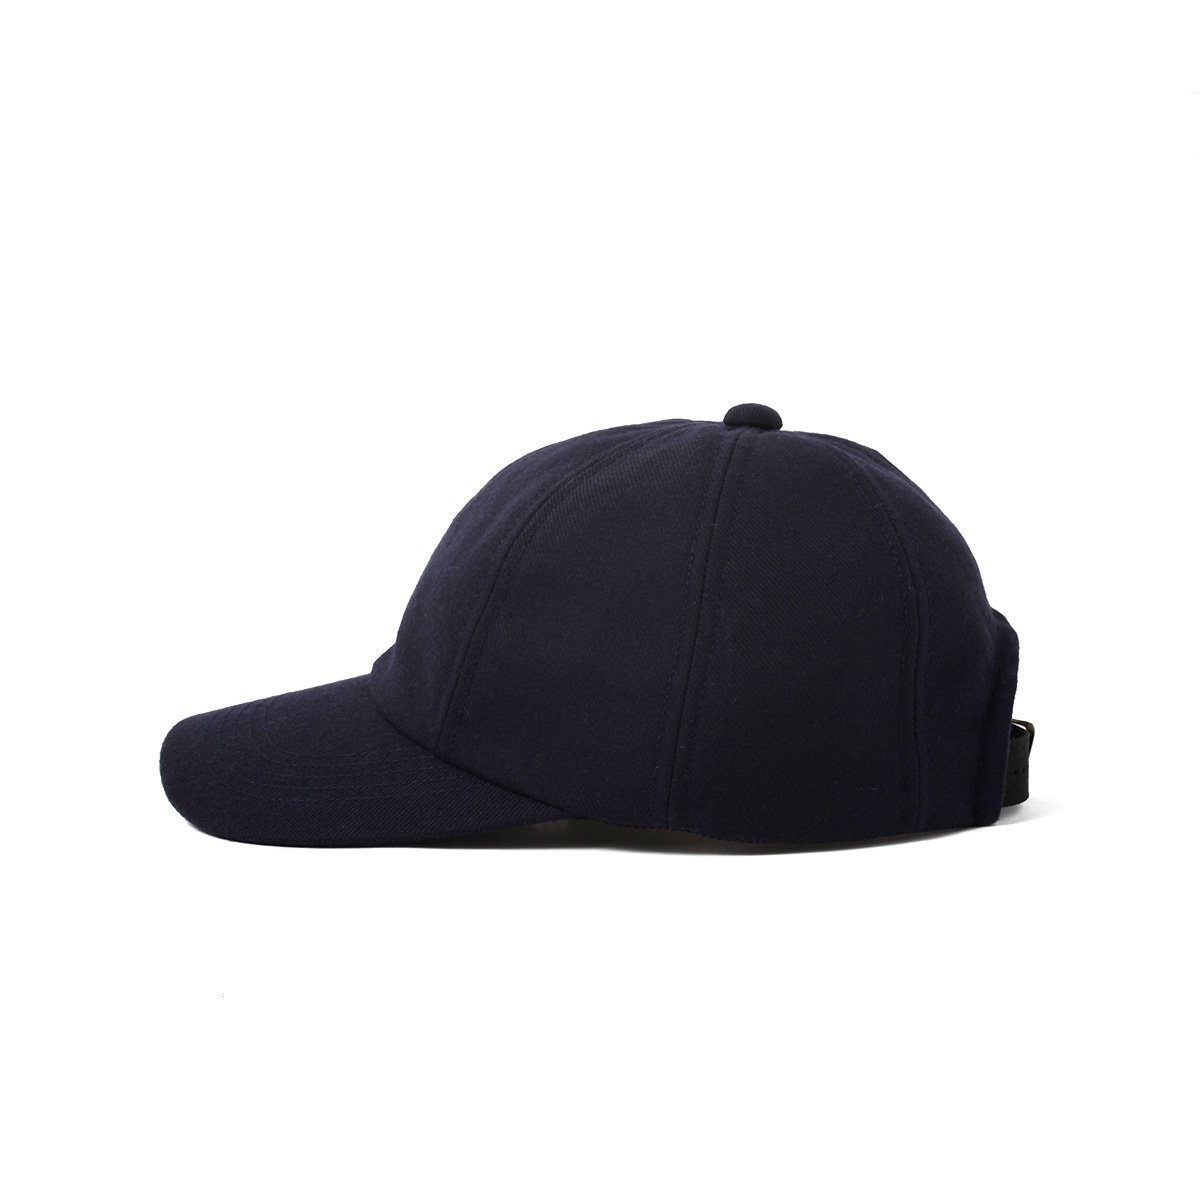 BASEBALL CLASSIC CAP<img class='new_mark_img2' src='https://img.shop-pro.jp/img/new/icons16.gif' style='border:none;display:inline;margin:0px;padding:0px;width:auto;' />